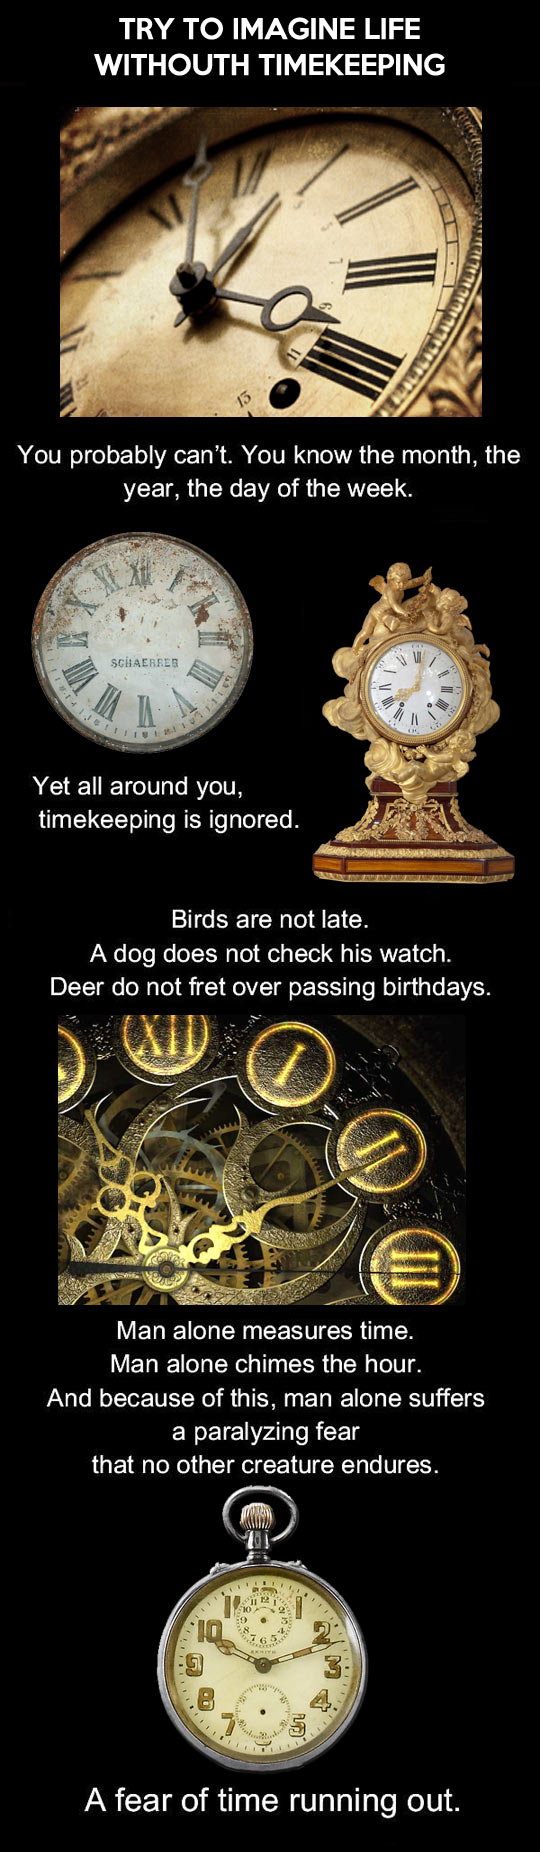 Imagine life without timekeeping…